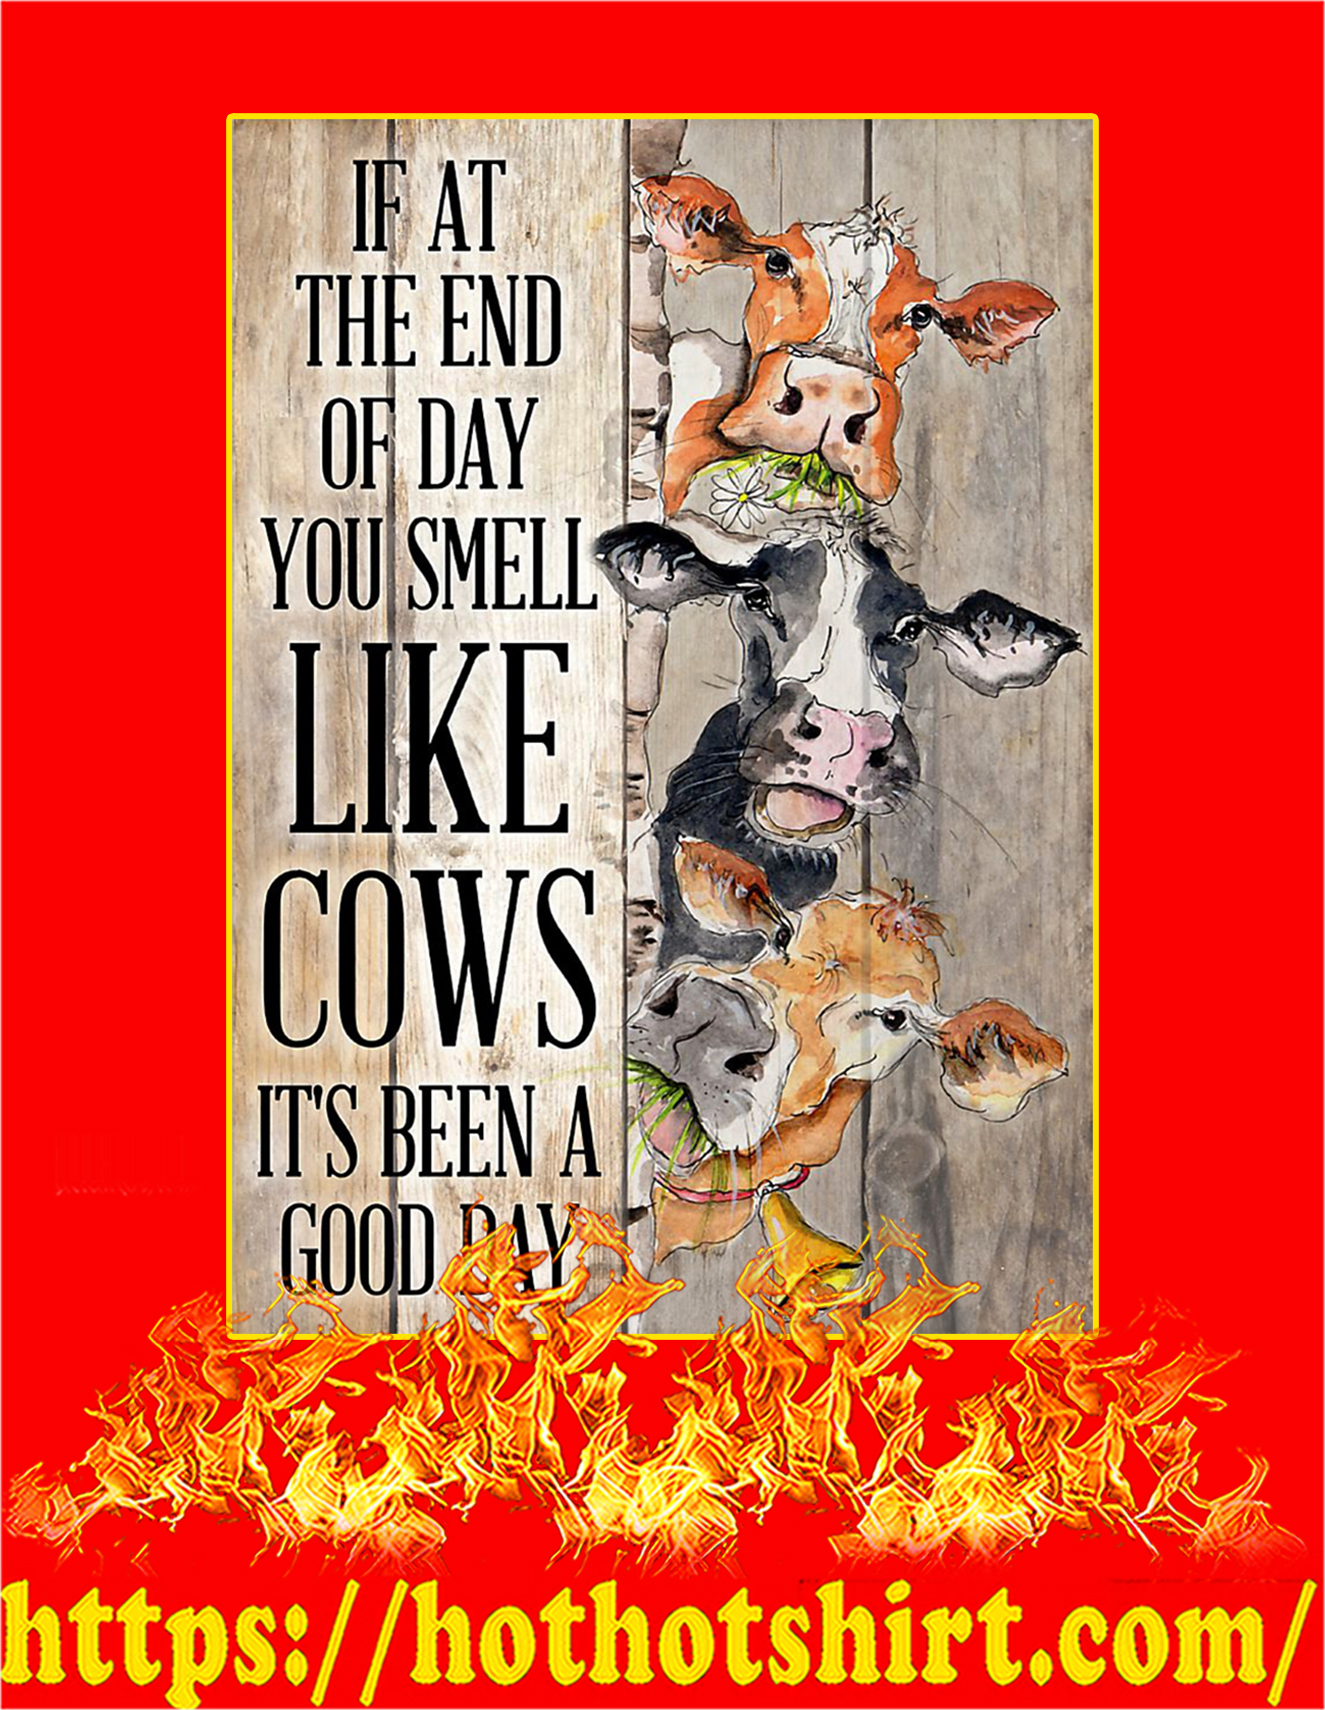 If at the end of day you smell like cows poster - A3